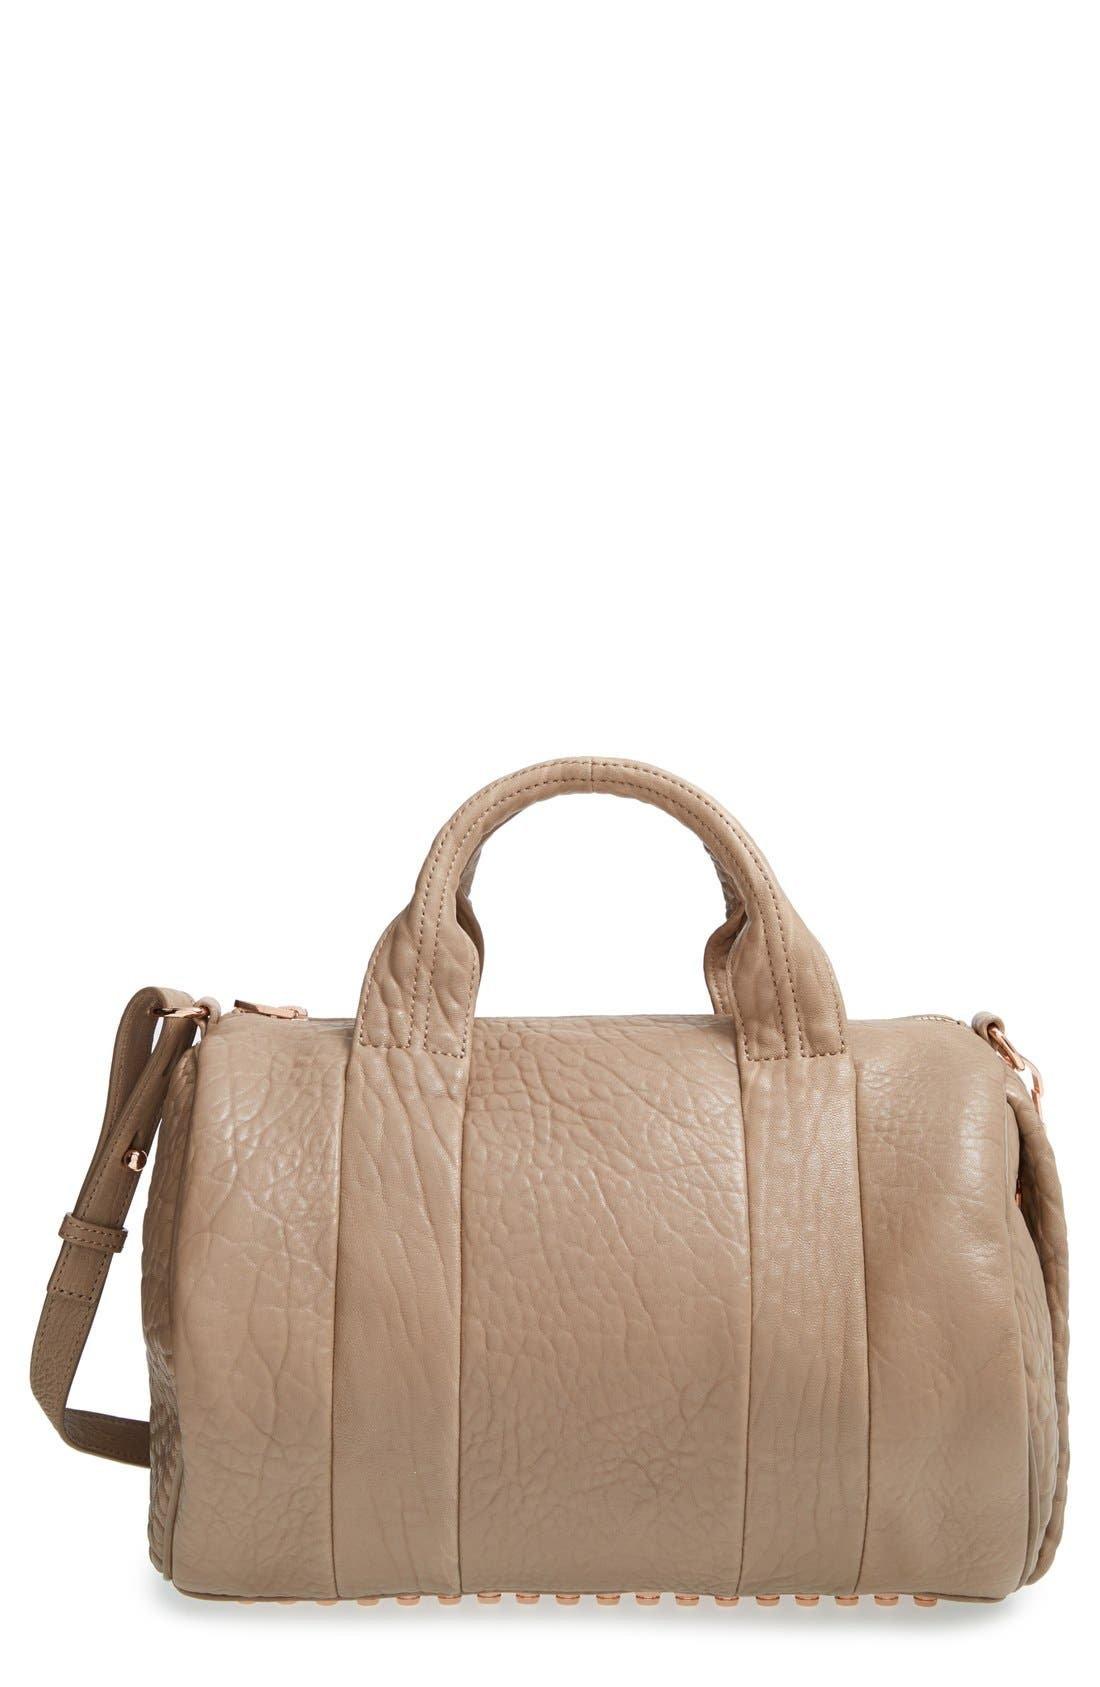 ALEXANDER WANG, 'Rocco - Rose Gold' Leather Satchel, Main thumbnail 1, color, 250